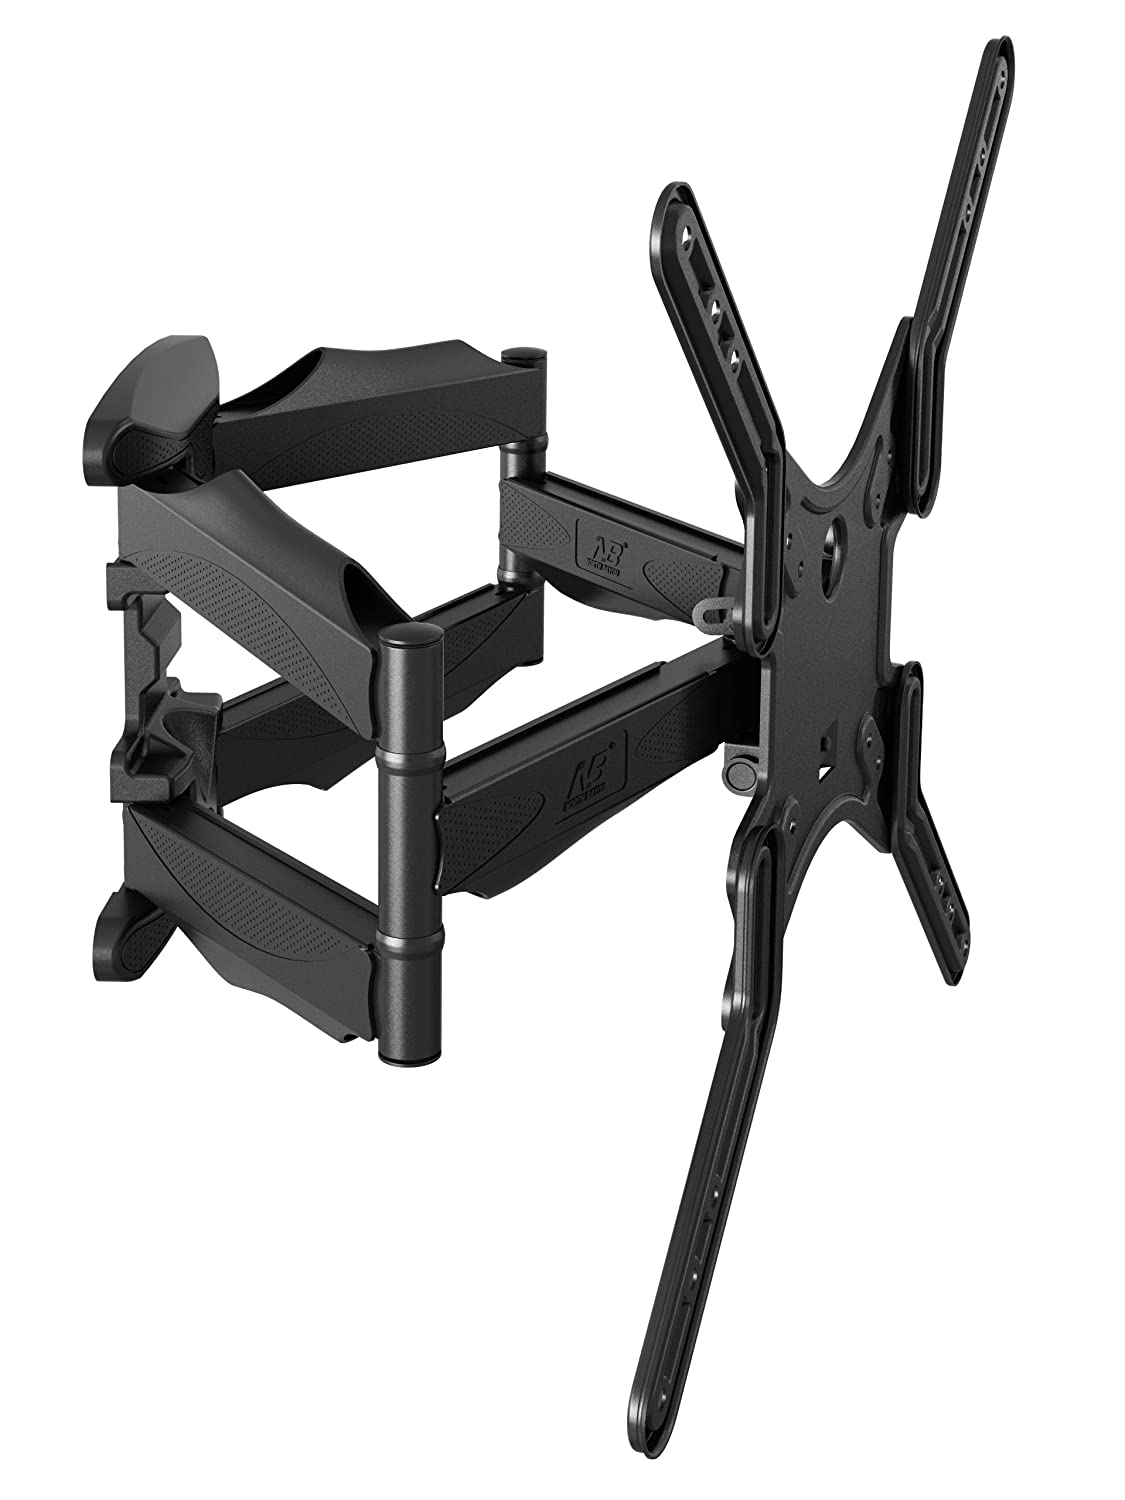 North Bayou Articulating Cantilever Wall Mount P5 for 32 ''- 55 inch LED, LCD, OLED, Plasma, HD TV Flat Screen up to 80 lbs 4330182361